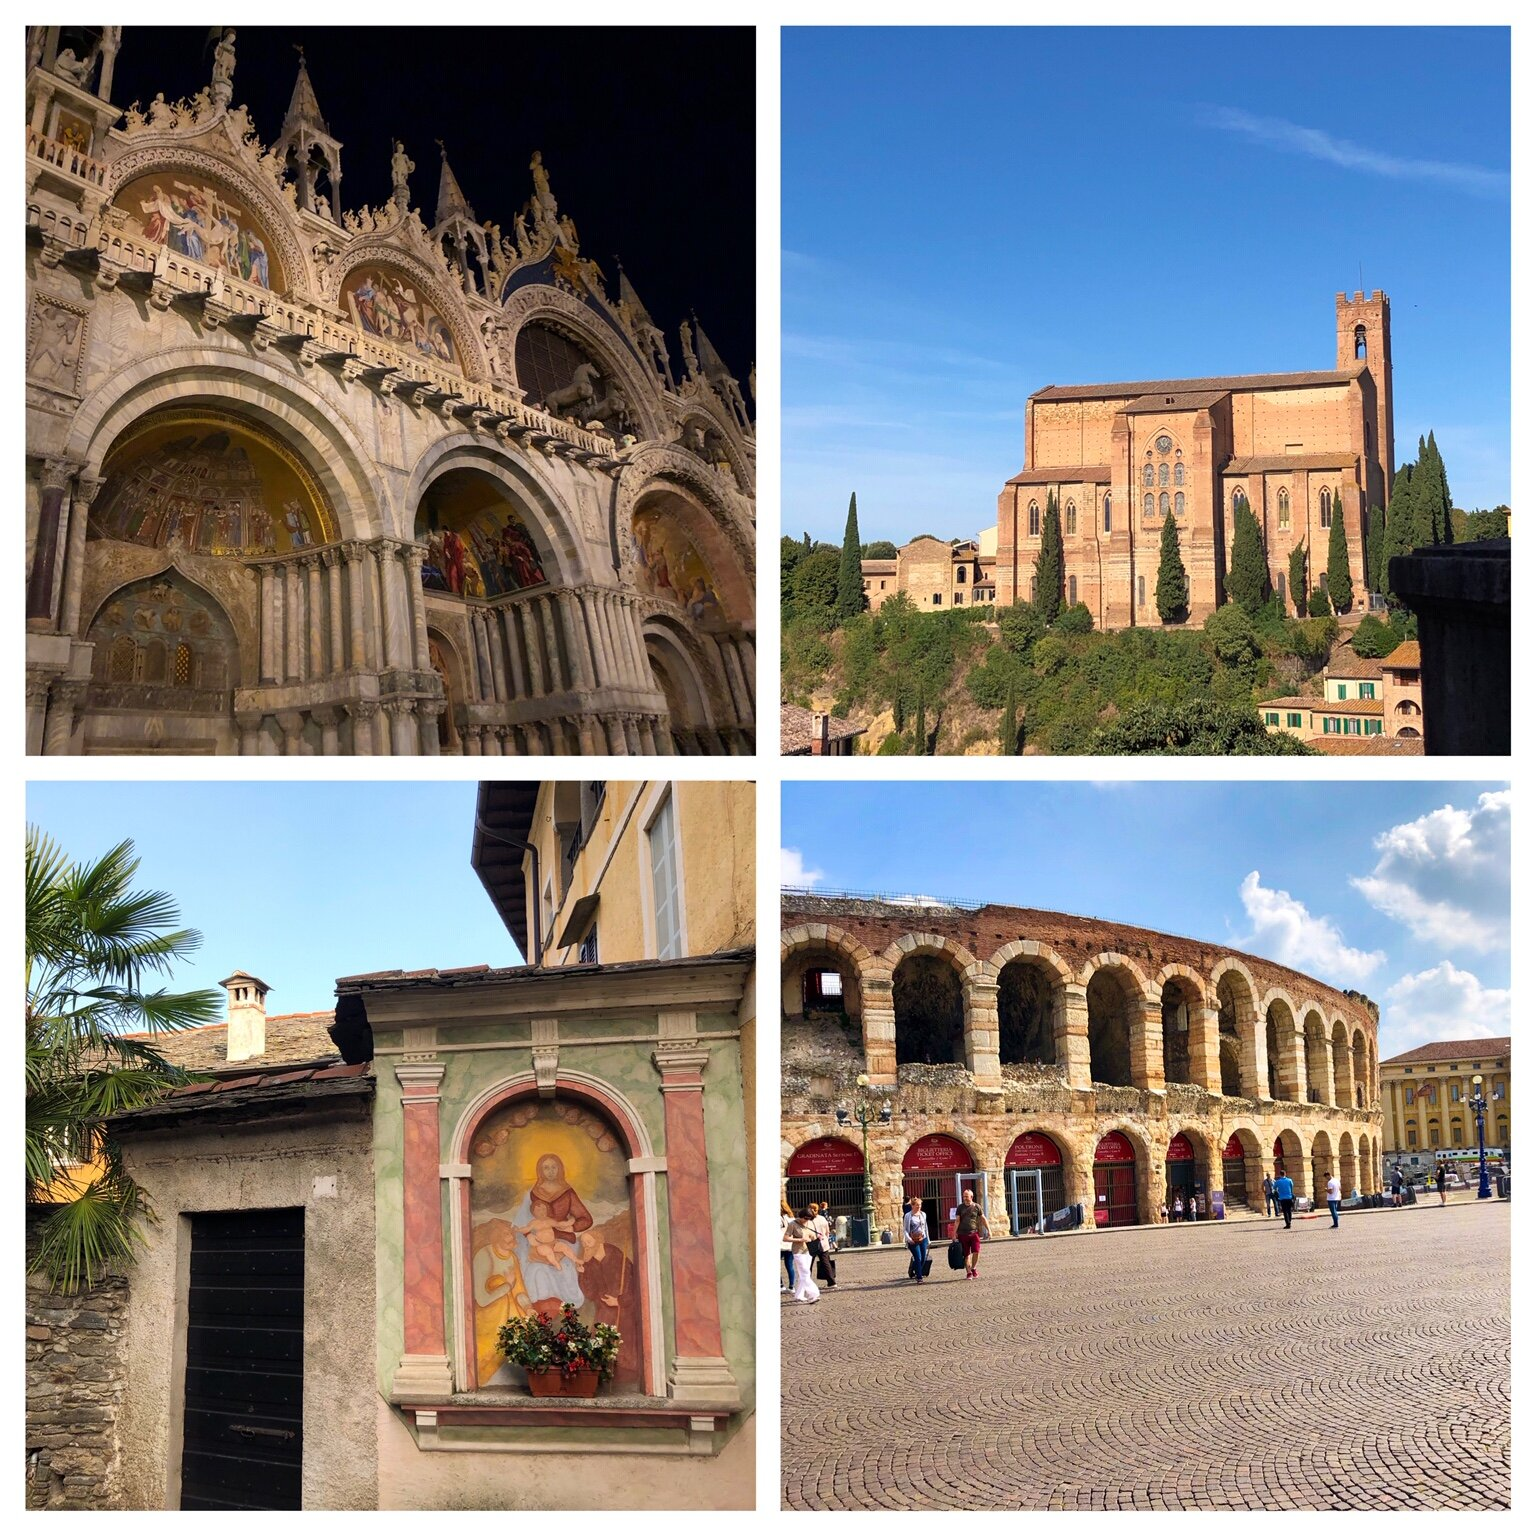 Examples of structures built with stone in Italy